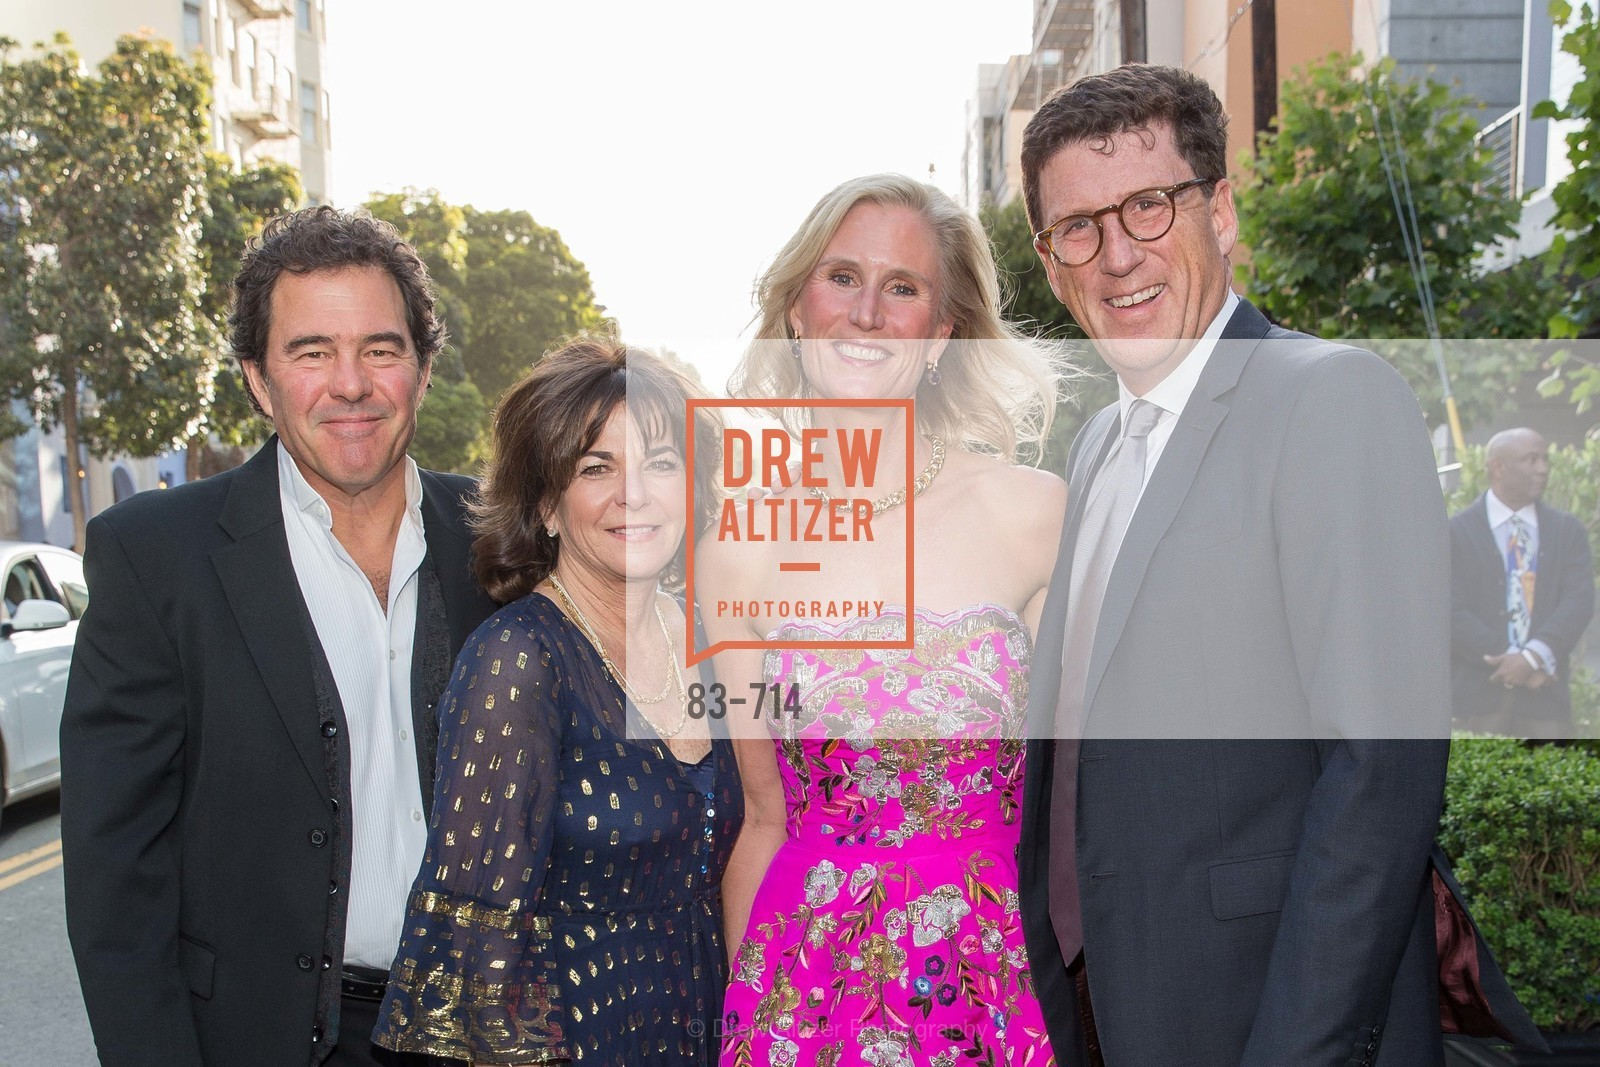 Glenn Burke, Patty Burke, Alison Mauze, Michael Mauze, SFJAZZ Gala 2015 Honors Joni Mitchell with Lifetime Achievement Award, US, May 9th, 2015,Drew Altizer, Drew Altizer Photography, full-service agency, private events, San Francisco photographer, photographer california